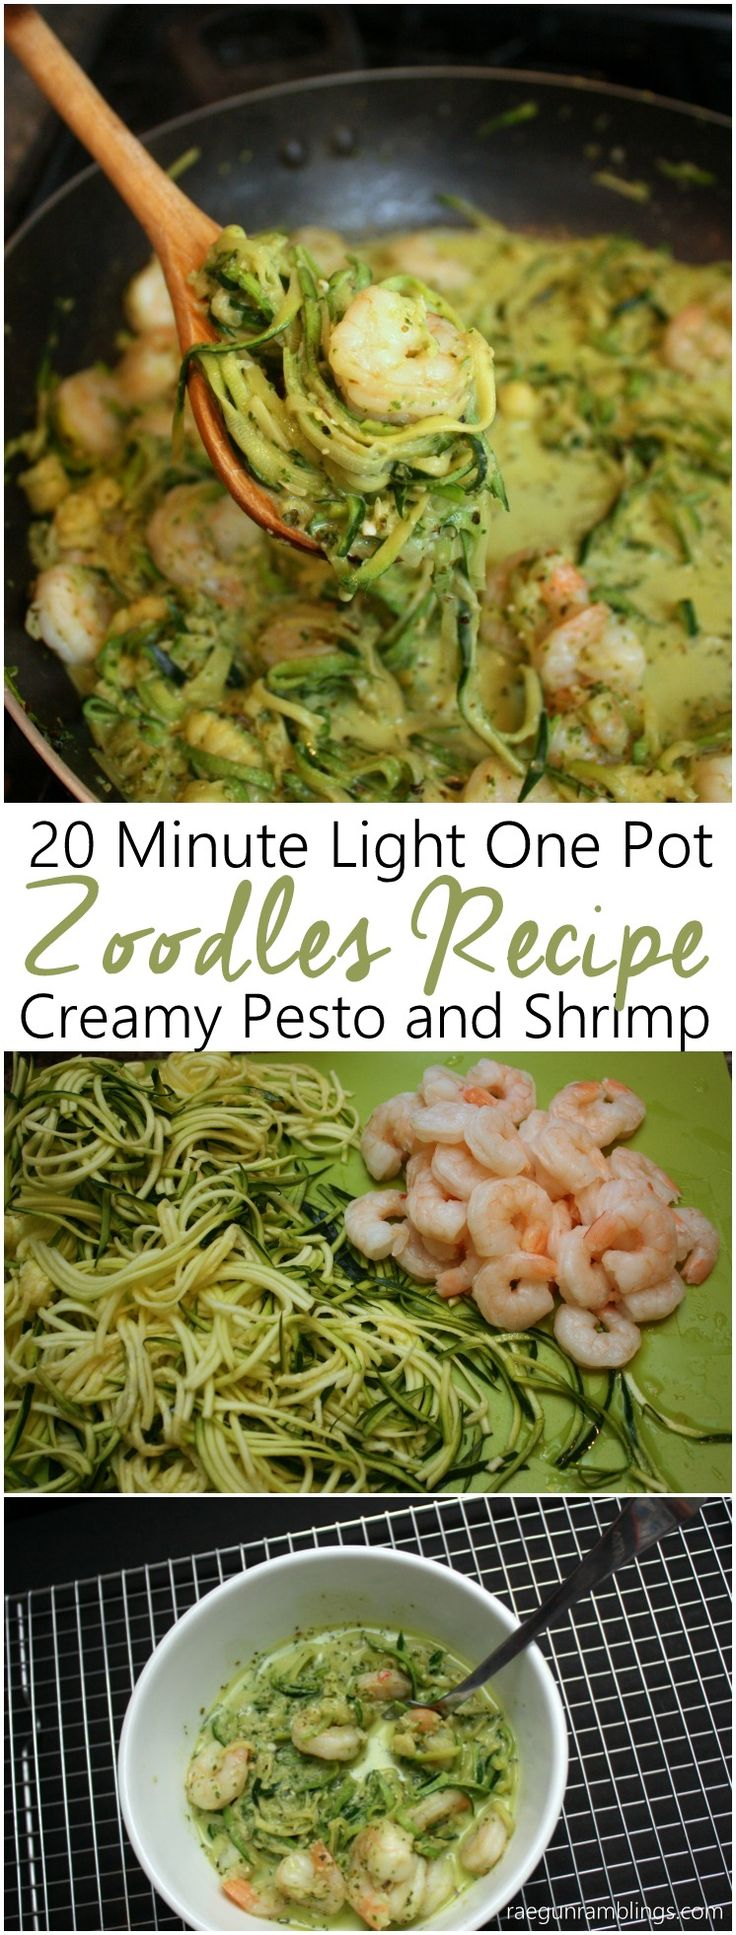 So glad I tried this. Super yummy low calorie and filling zoodle zucchini noodle recipe. With creamy pesto and shrimp sauce. Fast and great for weeknight dinners or lunch